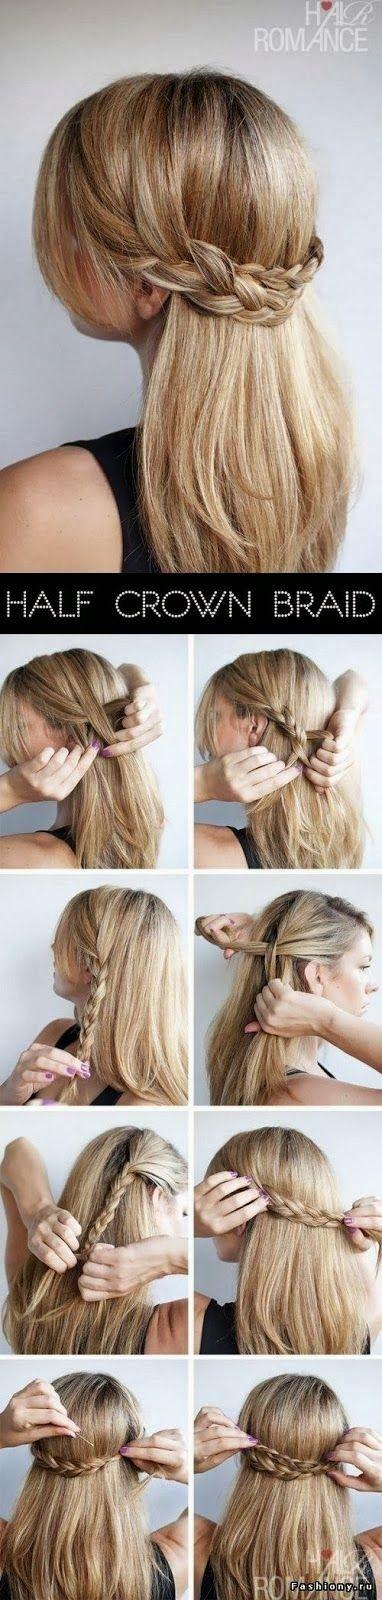 Half Crown Braid Style